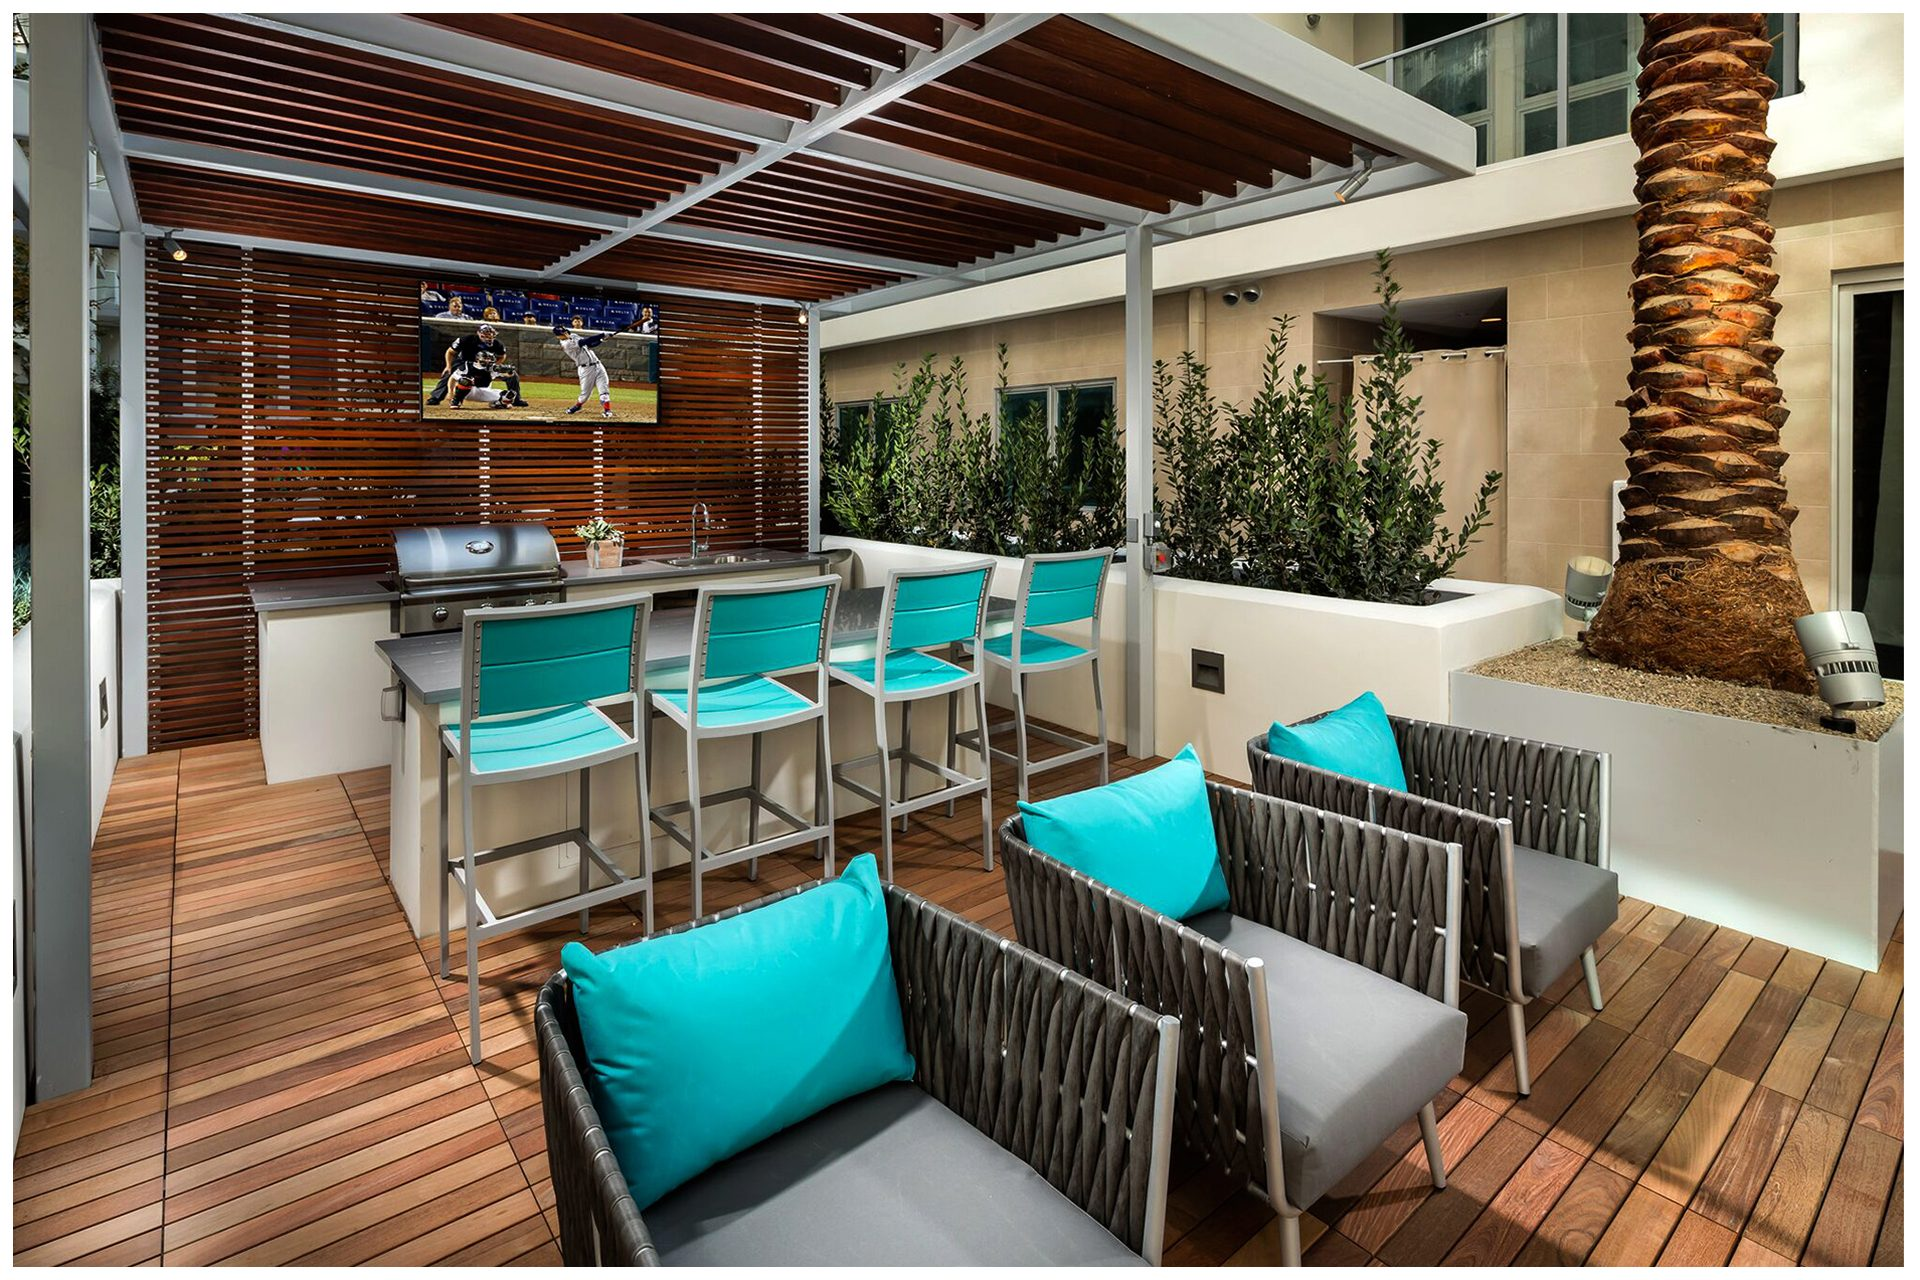 COURTYARD, POOL AREA, & SKY BRIDGE PROVISIONSCourtyard, Pool Area, & Sky Deck Audio Video & Enterprise Grade WiFi. Audio Video provisions are controlled via a nearby wall-mounted iPad and remotely from leasing office iPad. Local iPad allows a limited range of volume change for music.